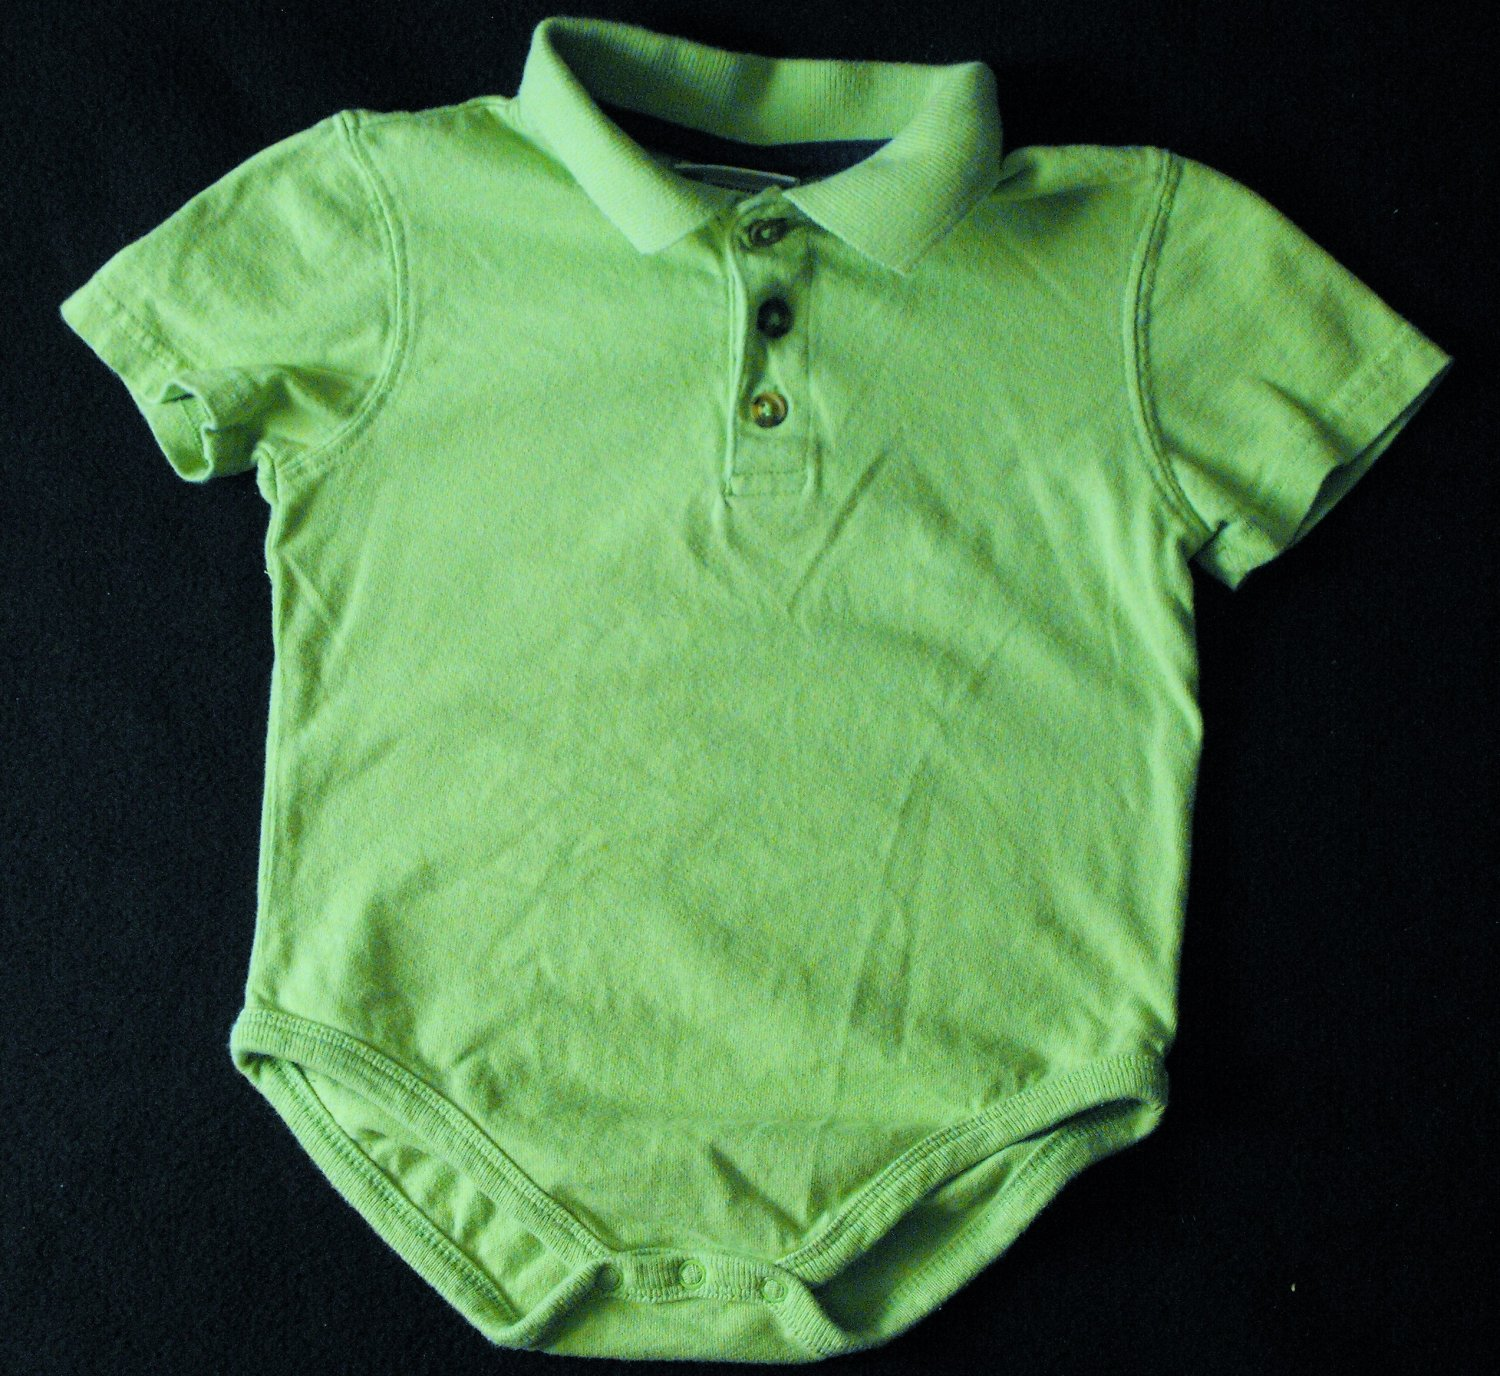 George Baby Bright Green Boys 18-24 Months Shortsleeve Onesie Polo Shirt